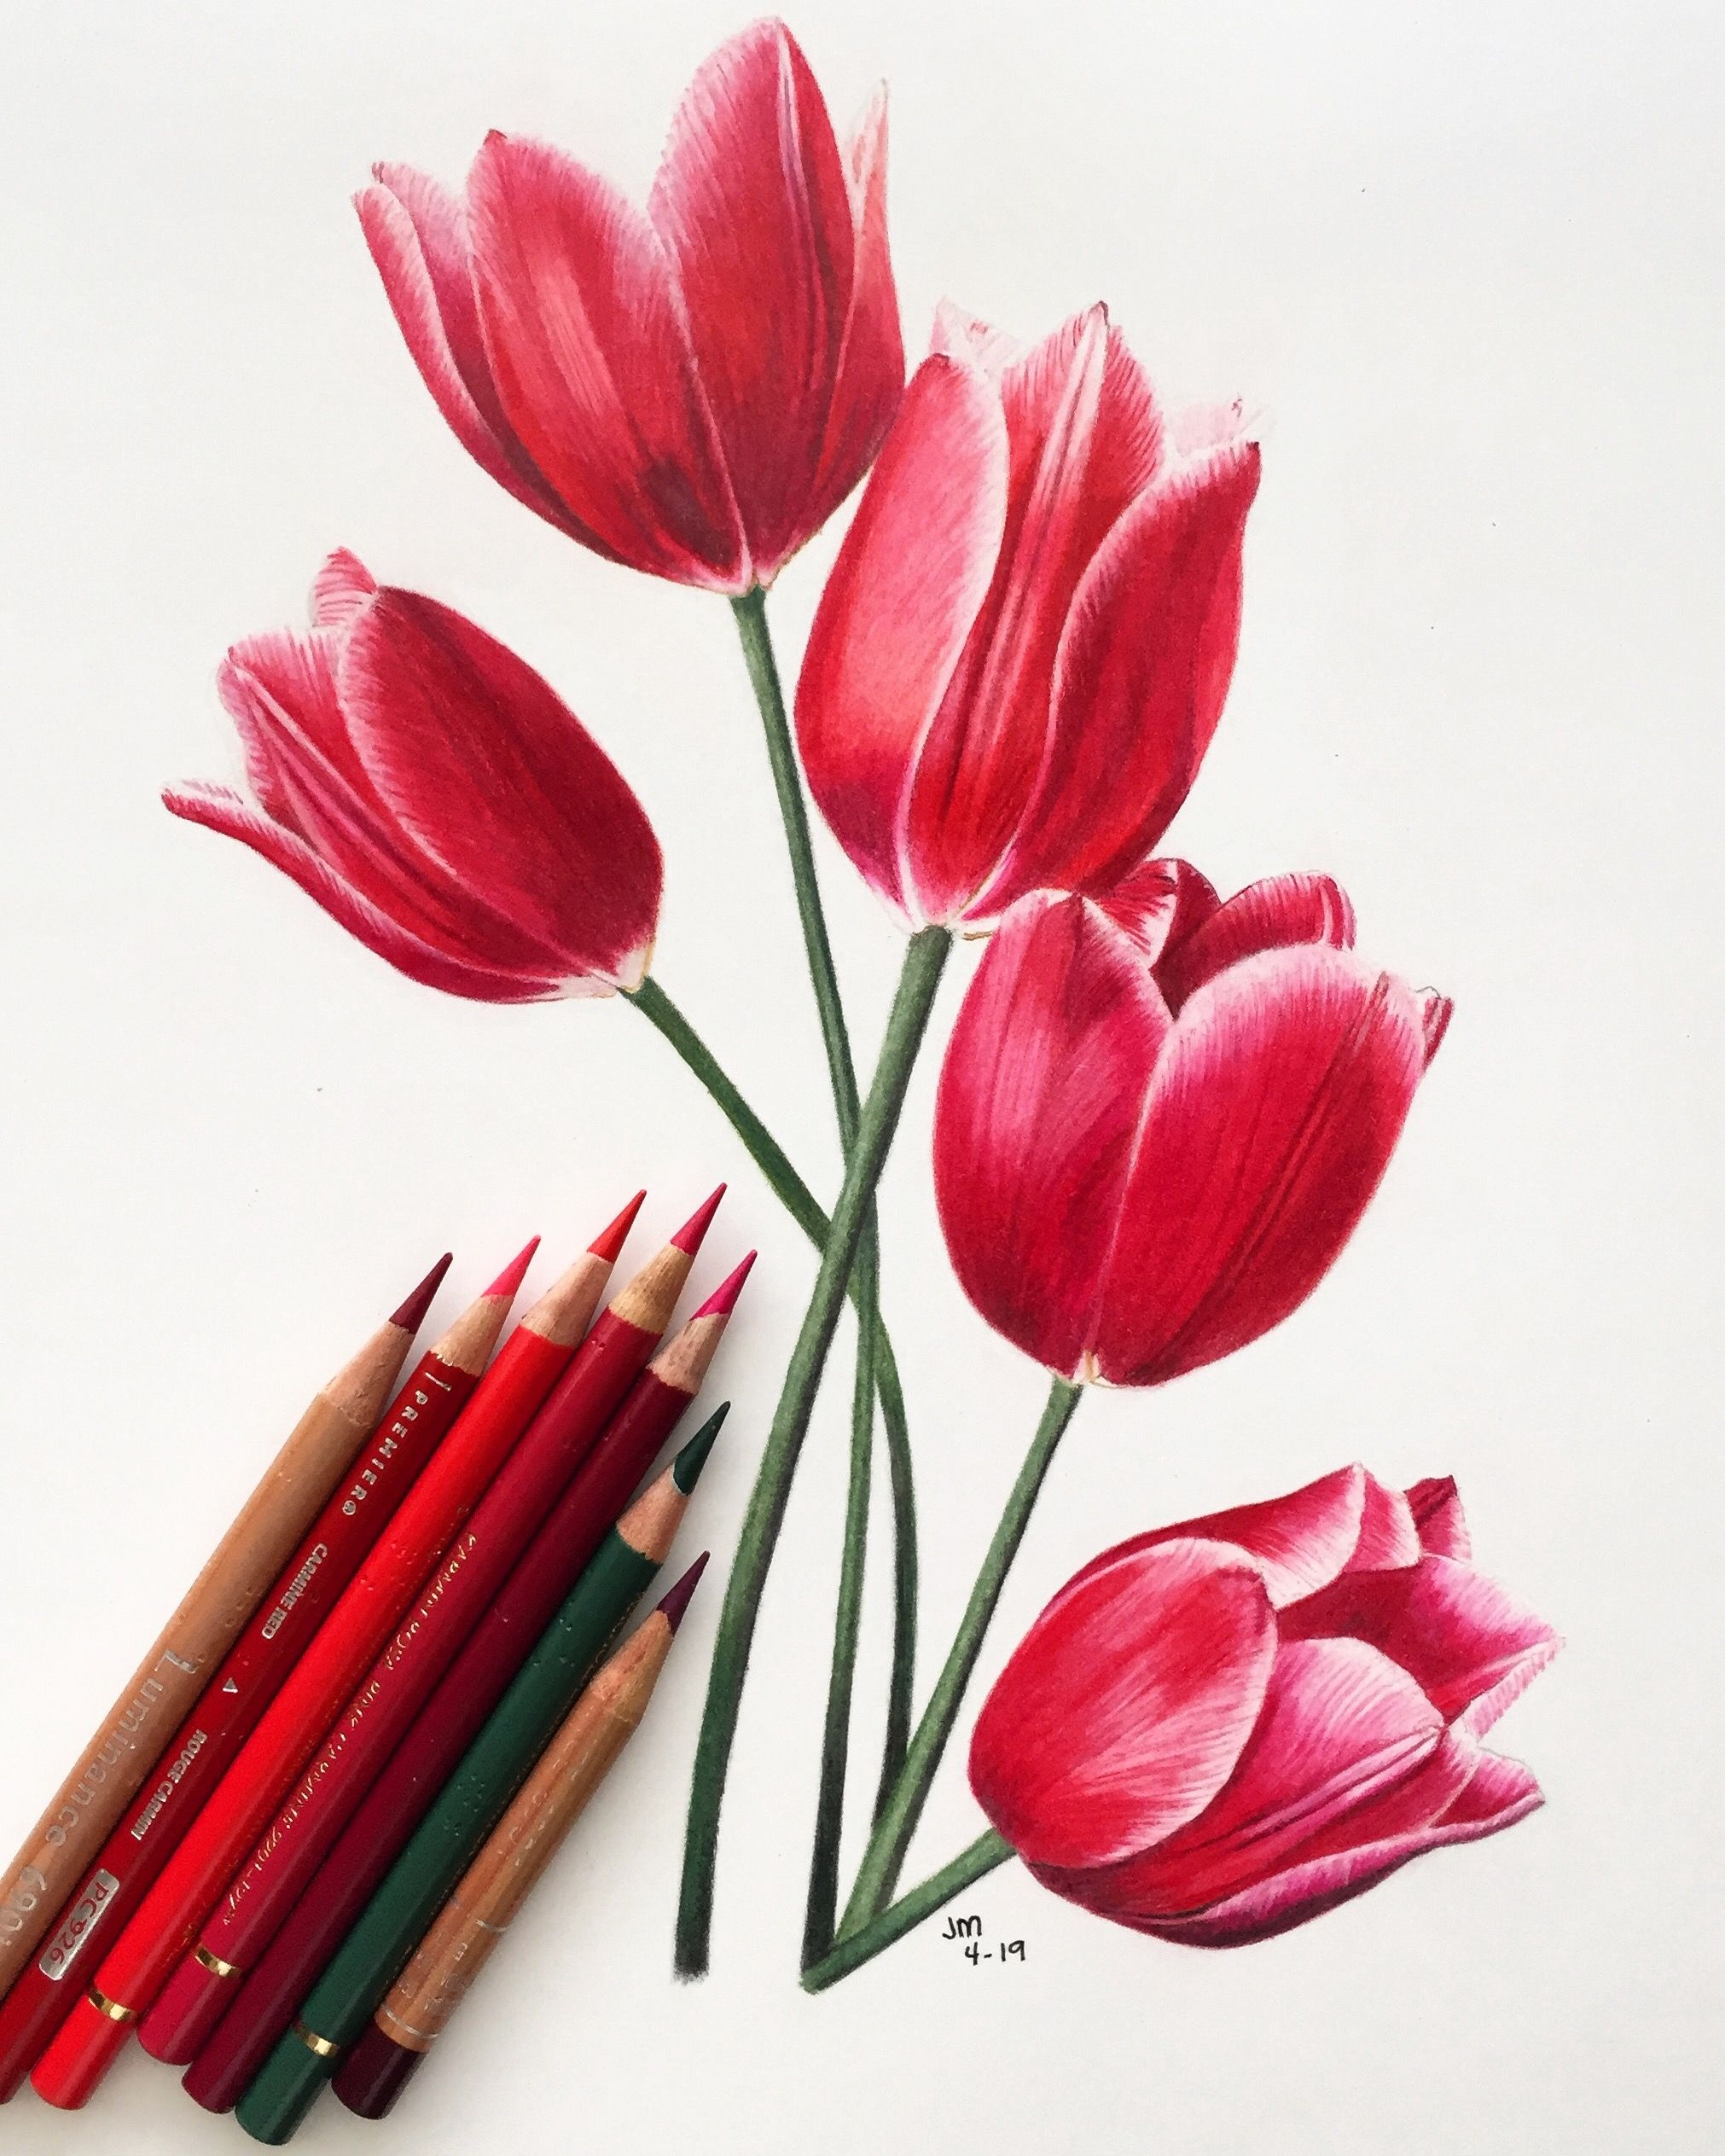 Bouquet of Red Tulips in Colored Pencil // 1 hour Tutorial